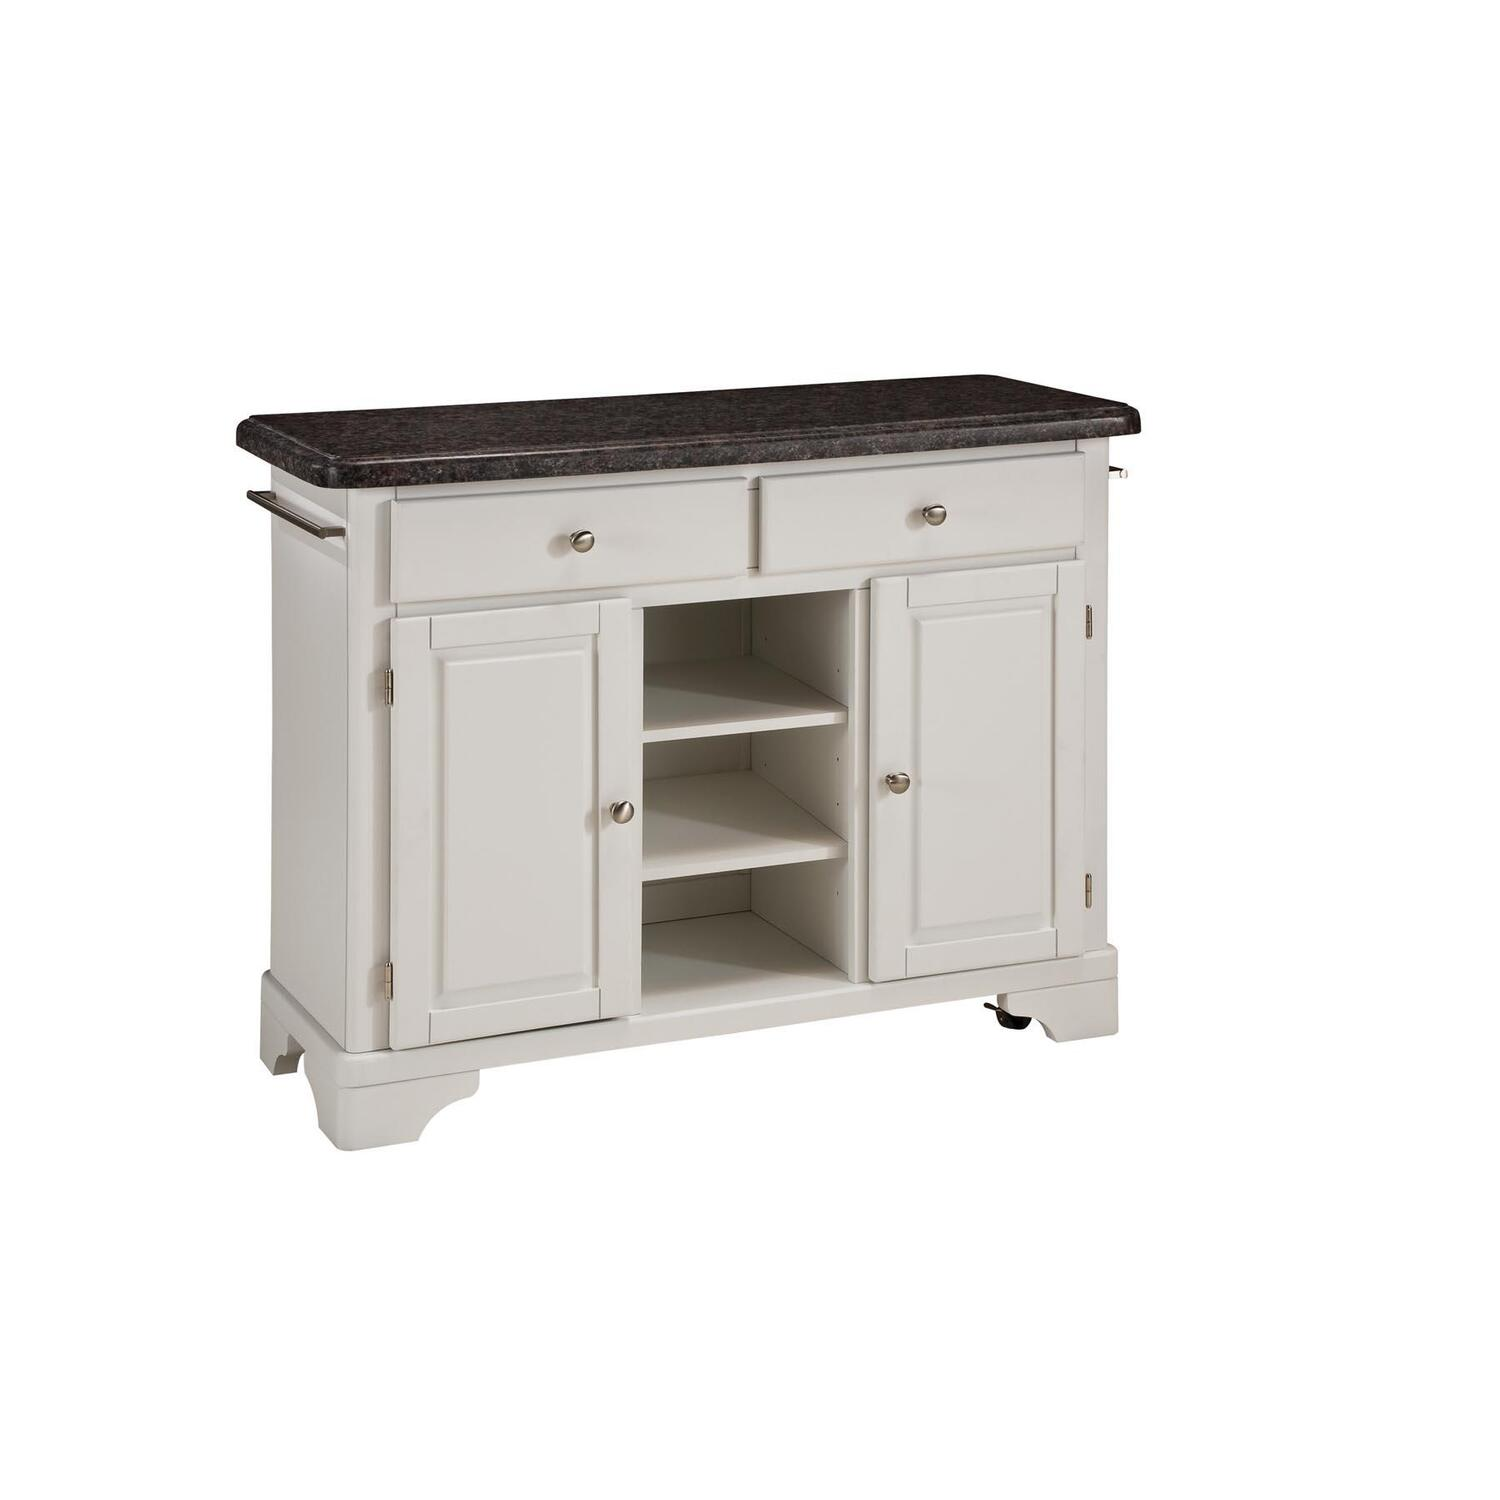 Home Styles Cabinet with Salmon Granite Top by OJ Commerce 9300 1025